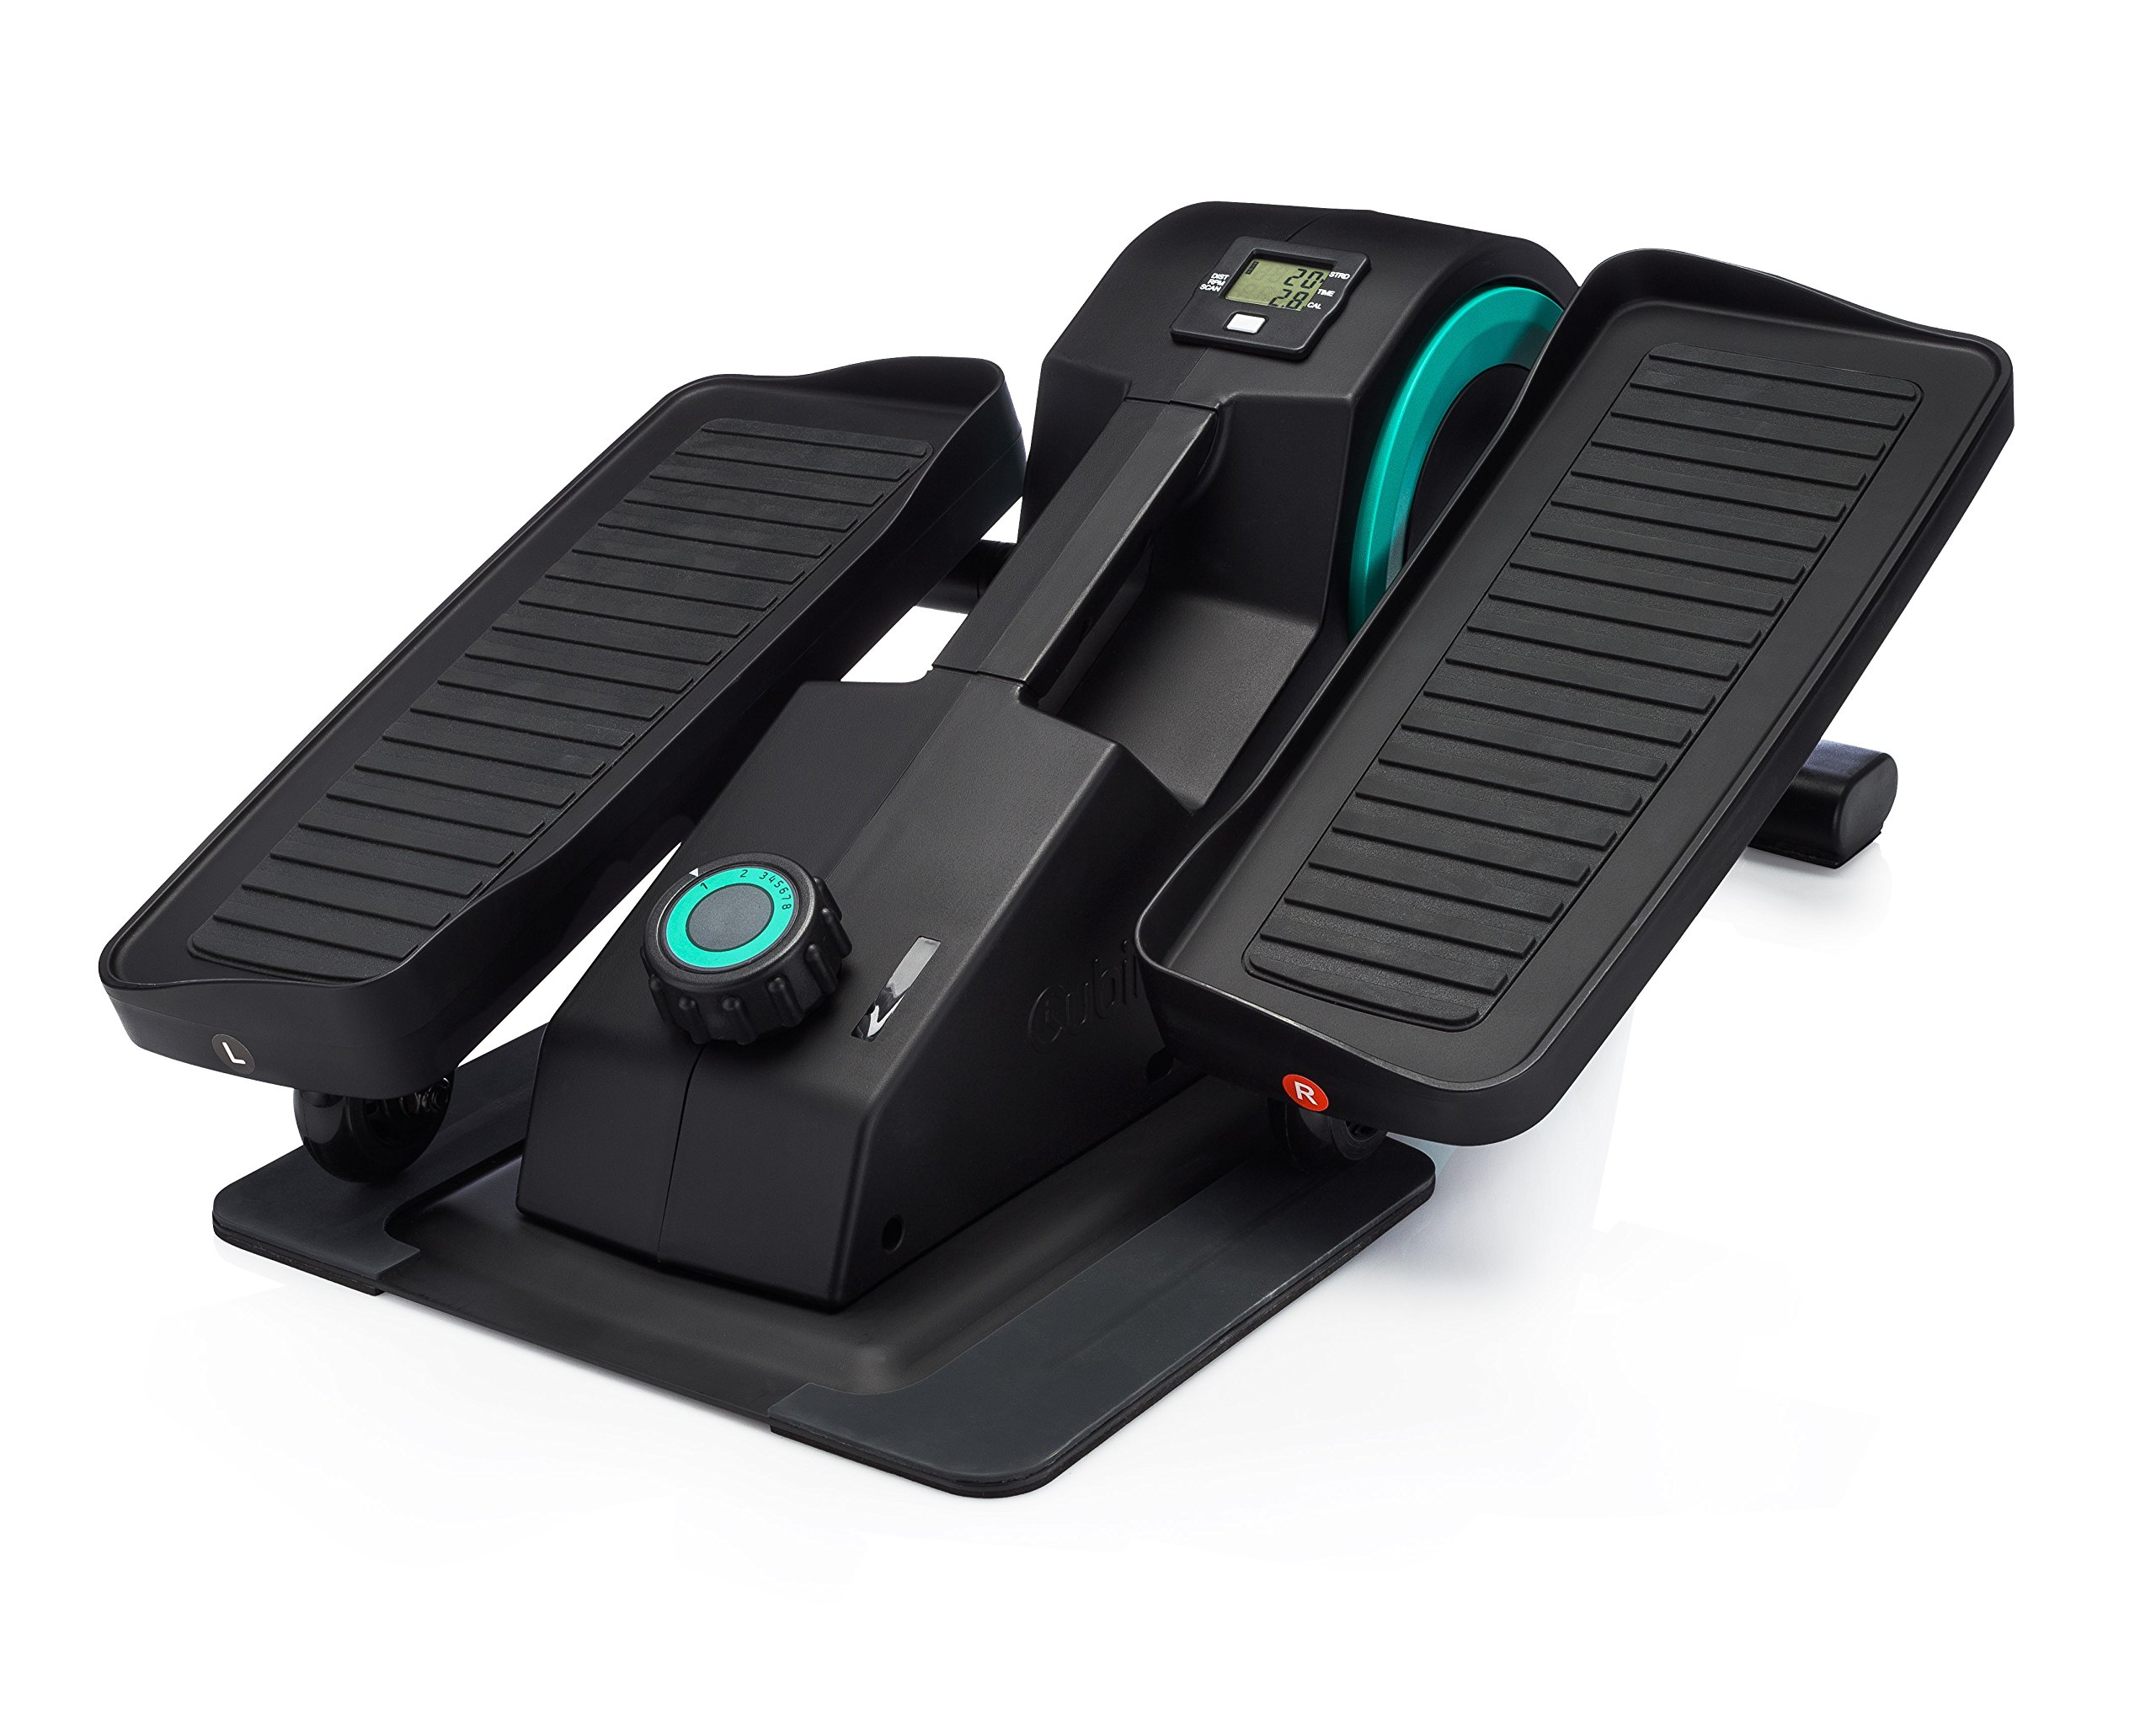 Cubii Jr: Desk Elliptical w/ Built In Display Monitor, Easy Assembly, Quiet & Compact, Adjustable Resistance (Aqua) by Cubii